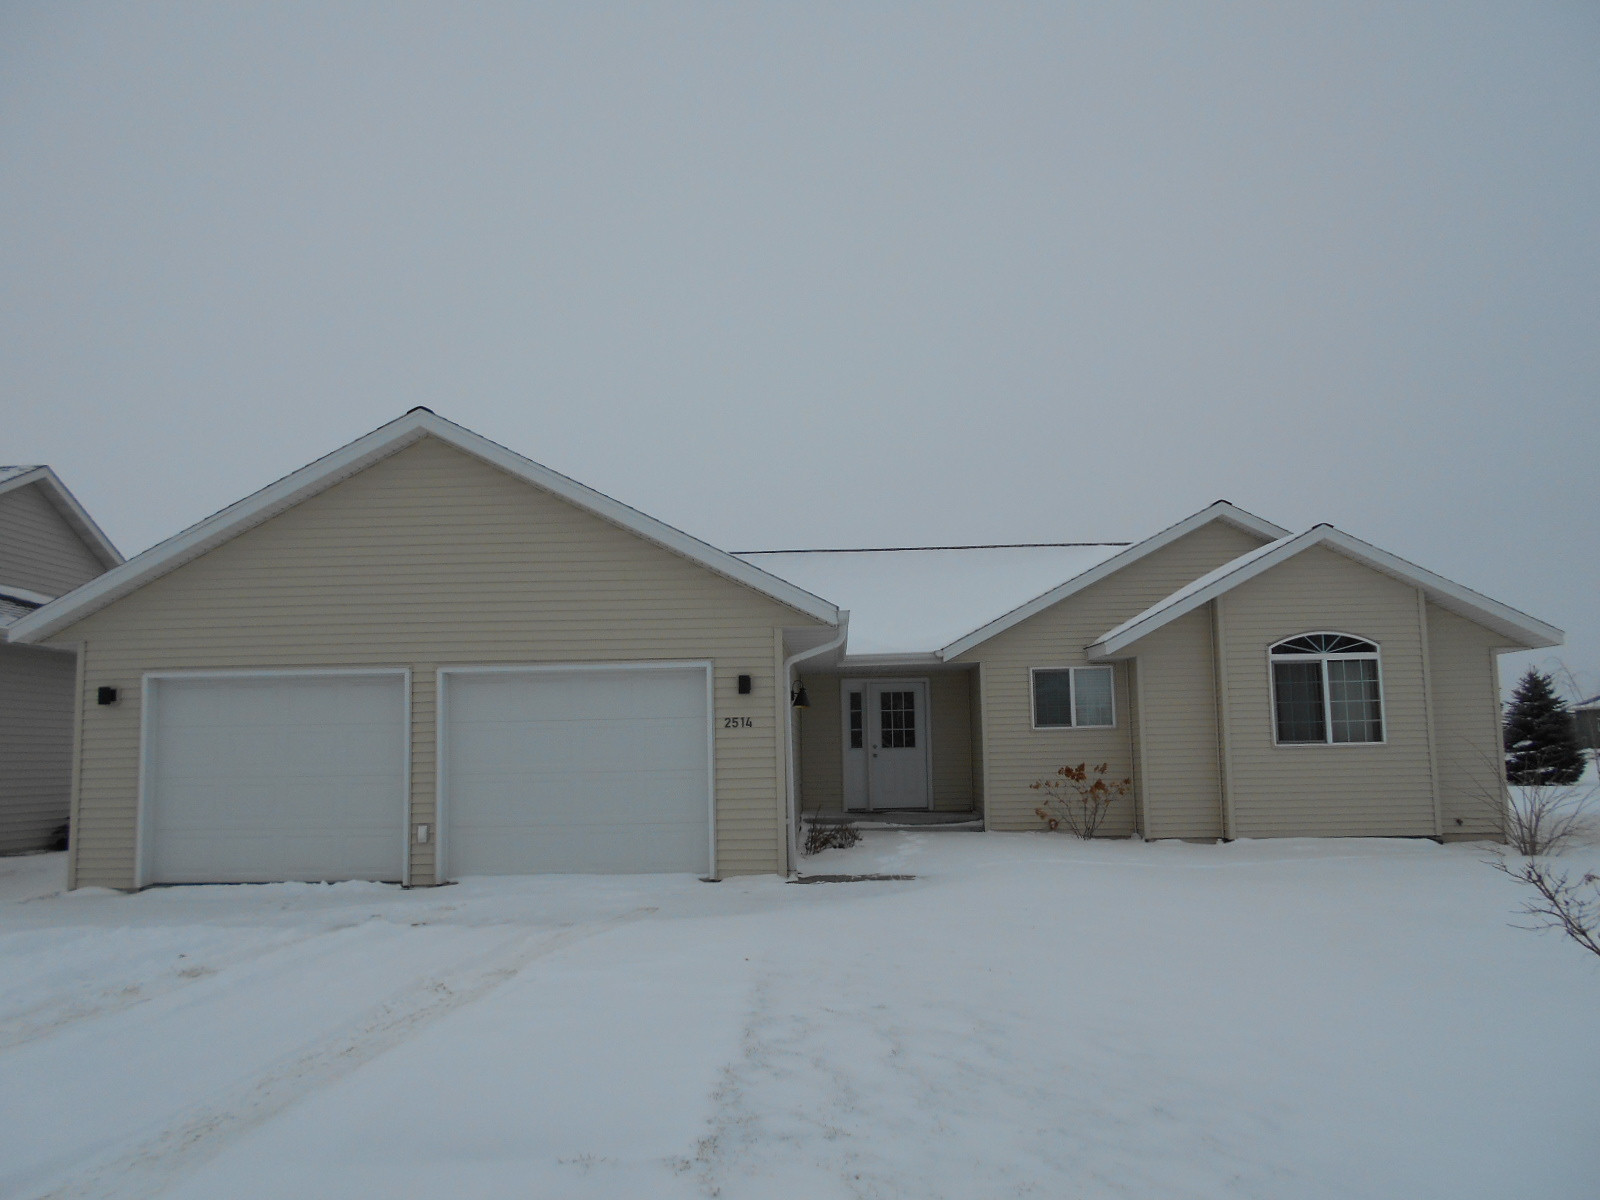 2514 4th St NE, Jamestown, North Dakota 58401